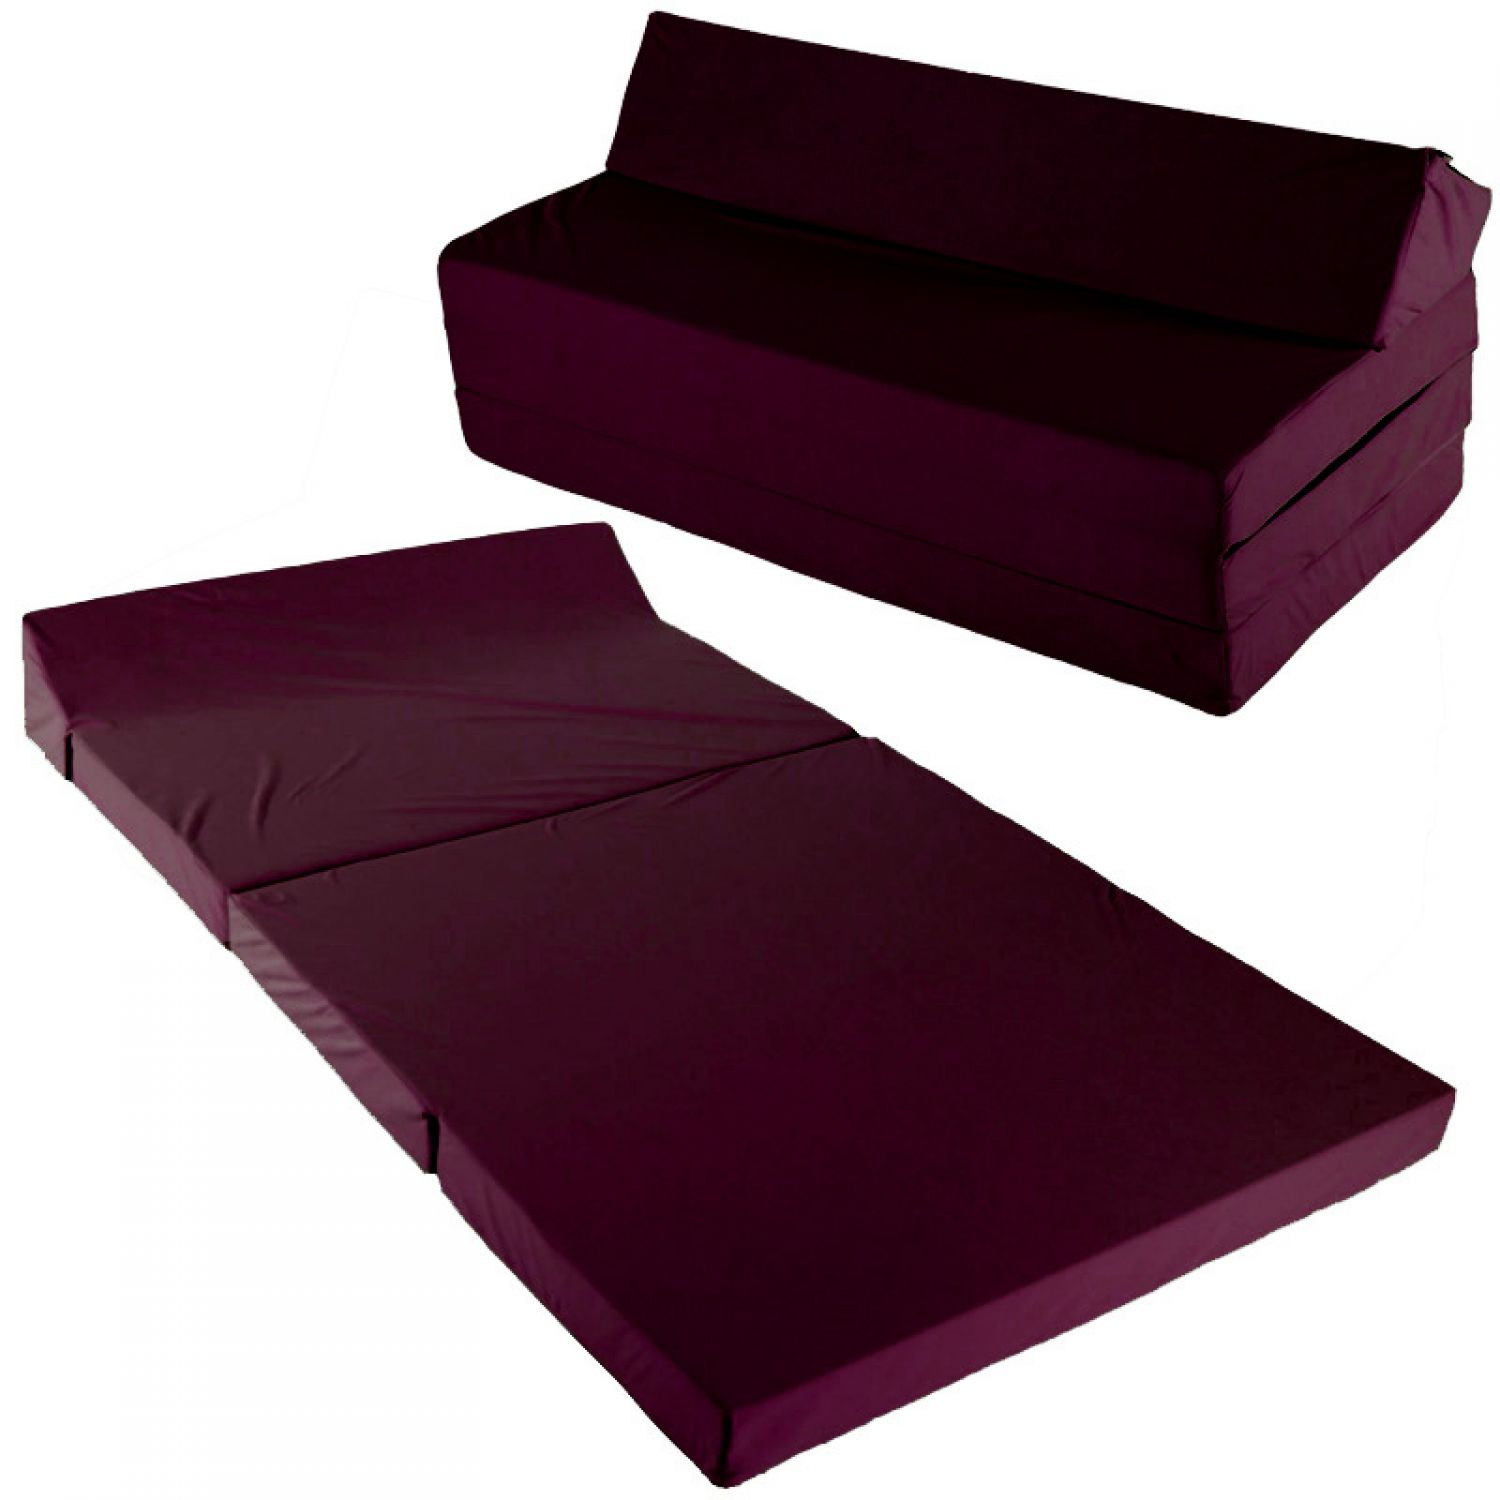 fauteuil lit matelas pliable lit d 39 invit s fauteuil lit. Black Bedroom Furniture Sets. Home Design Ideas